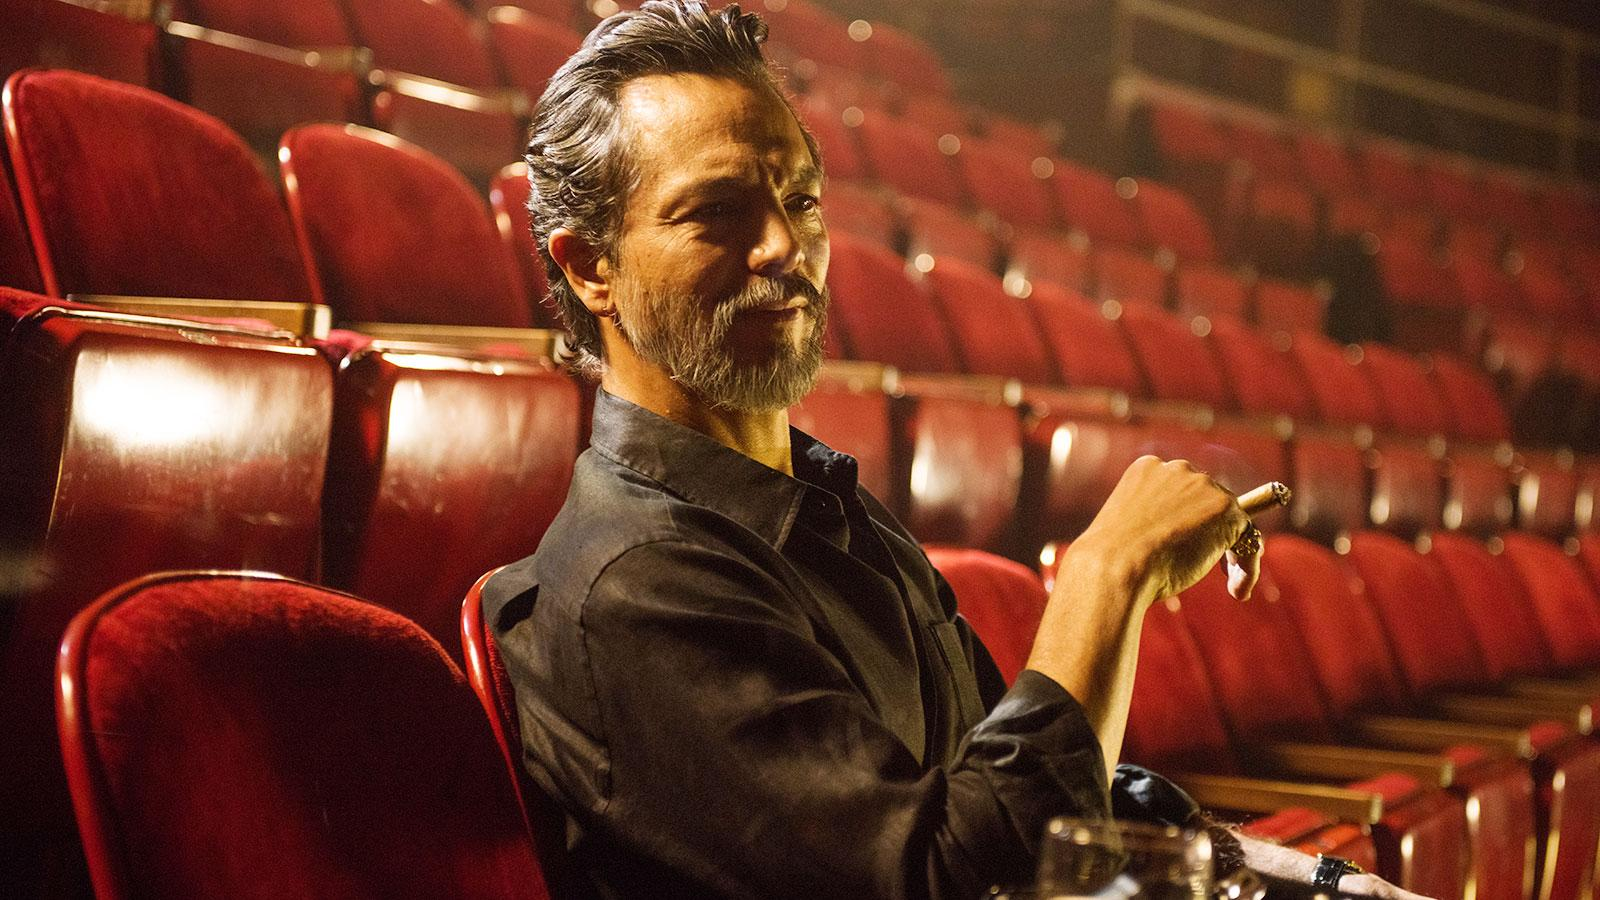 Cigars In Cinema: Benjamin Bratt